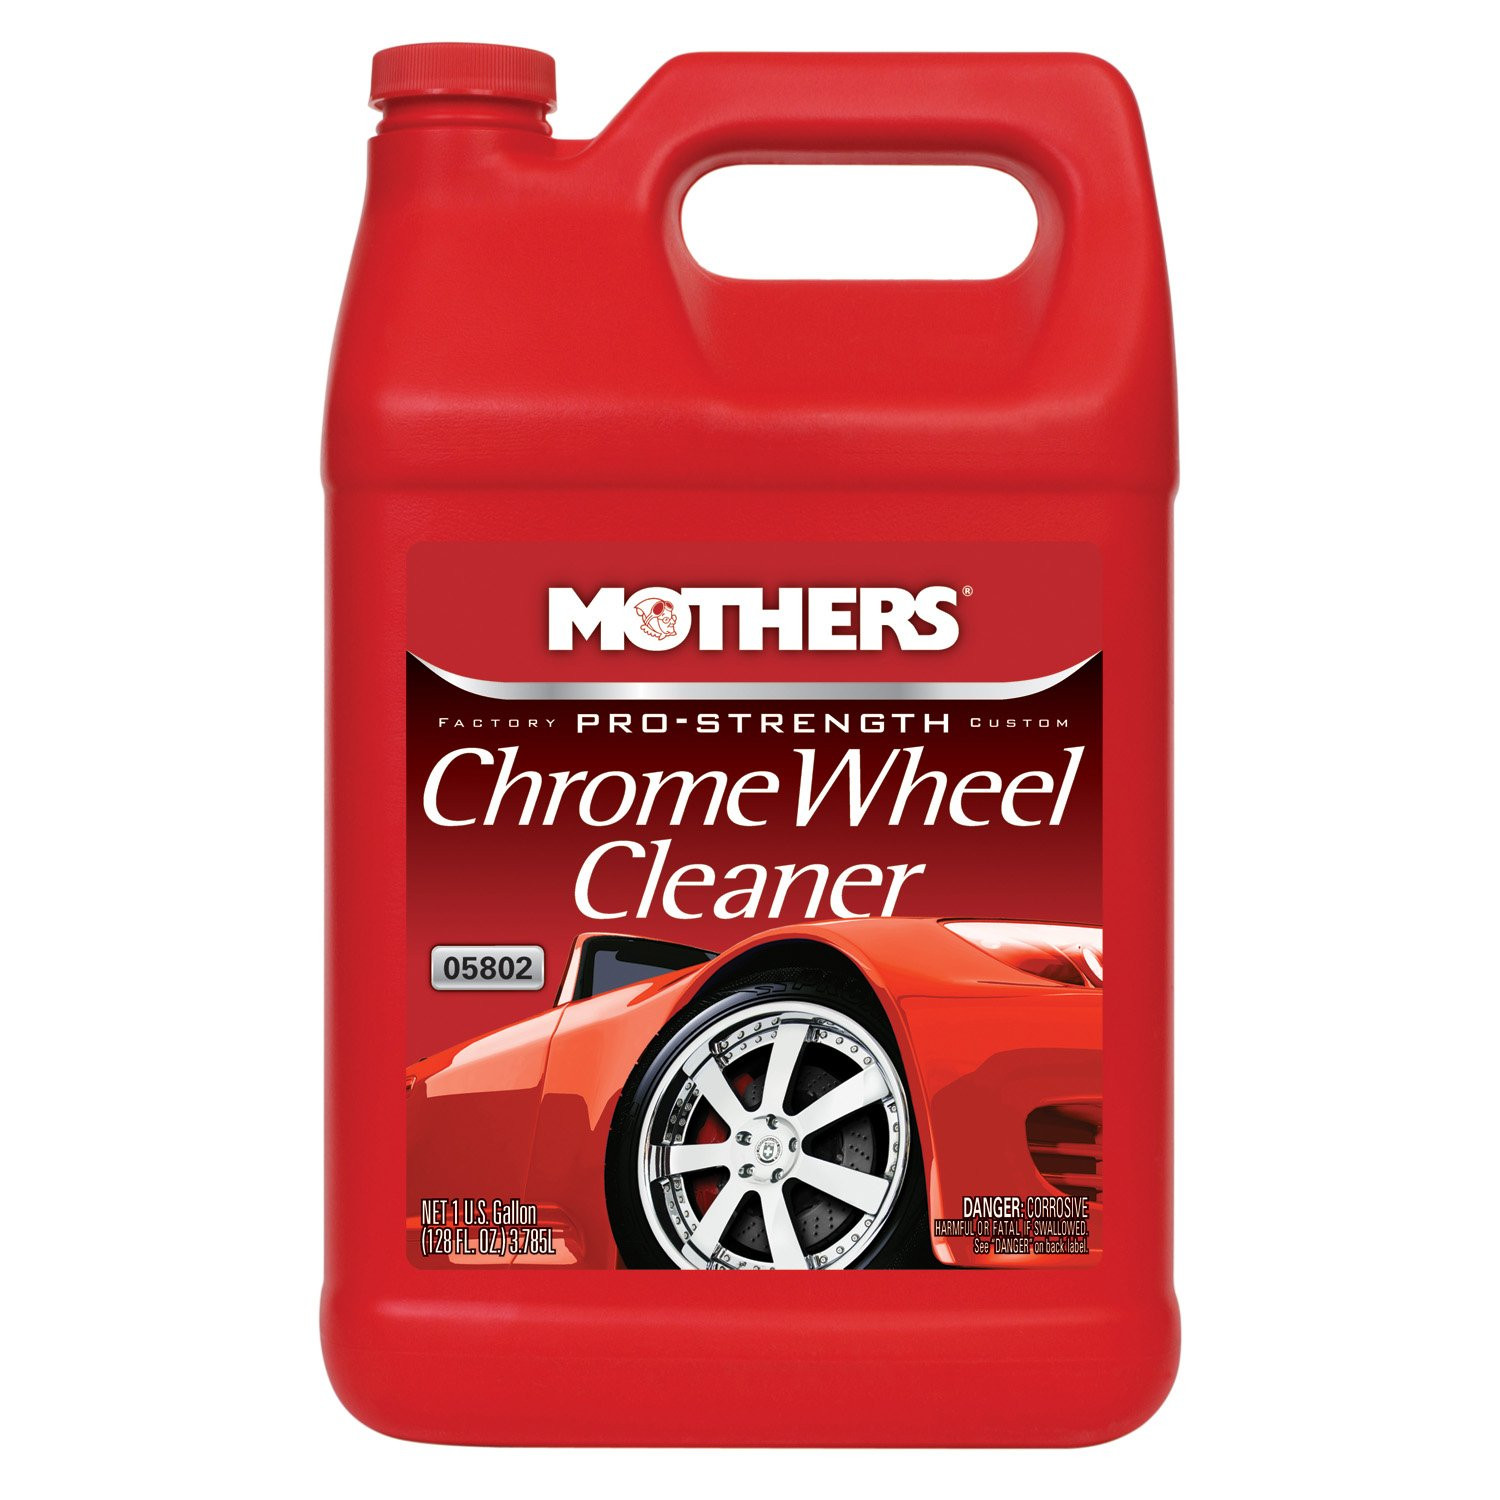 Mothers 05802 Pro-Strength Chrome Wheel Cleaner - 1 Gallon by Mothers (Image #1)